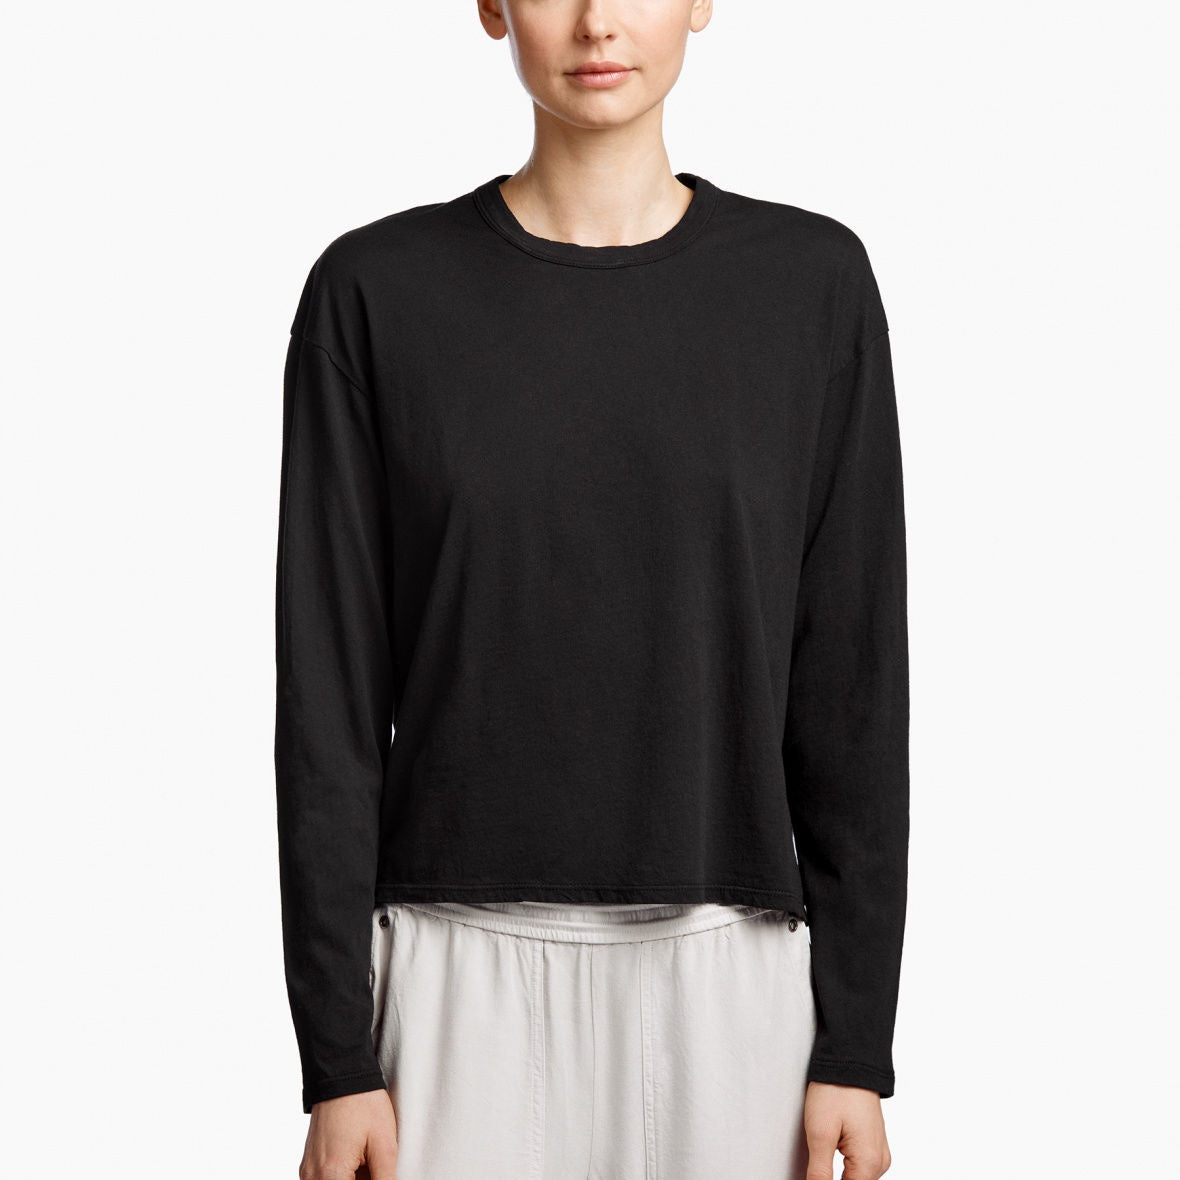 James Perse - Boxy Long Sleeve Tee - Black